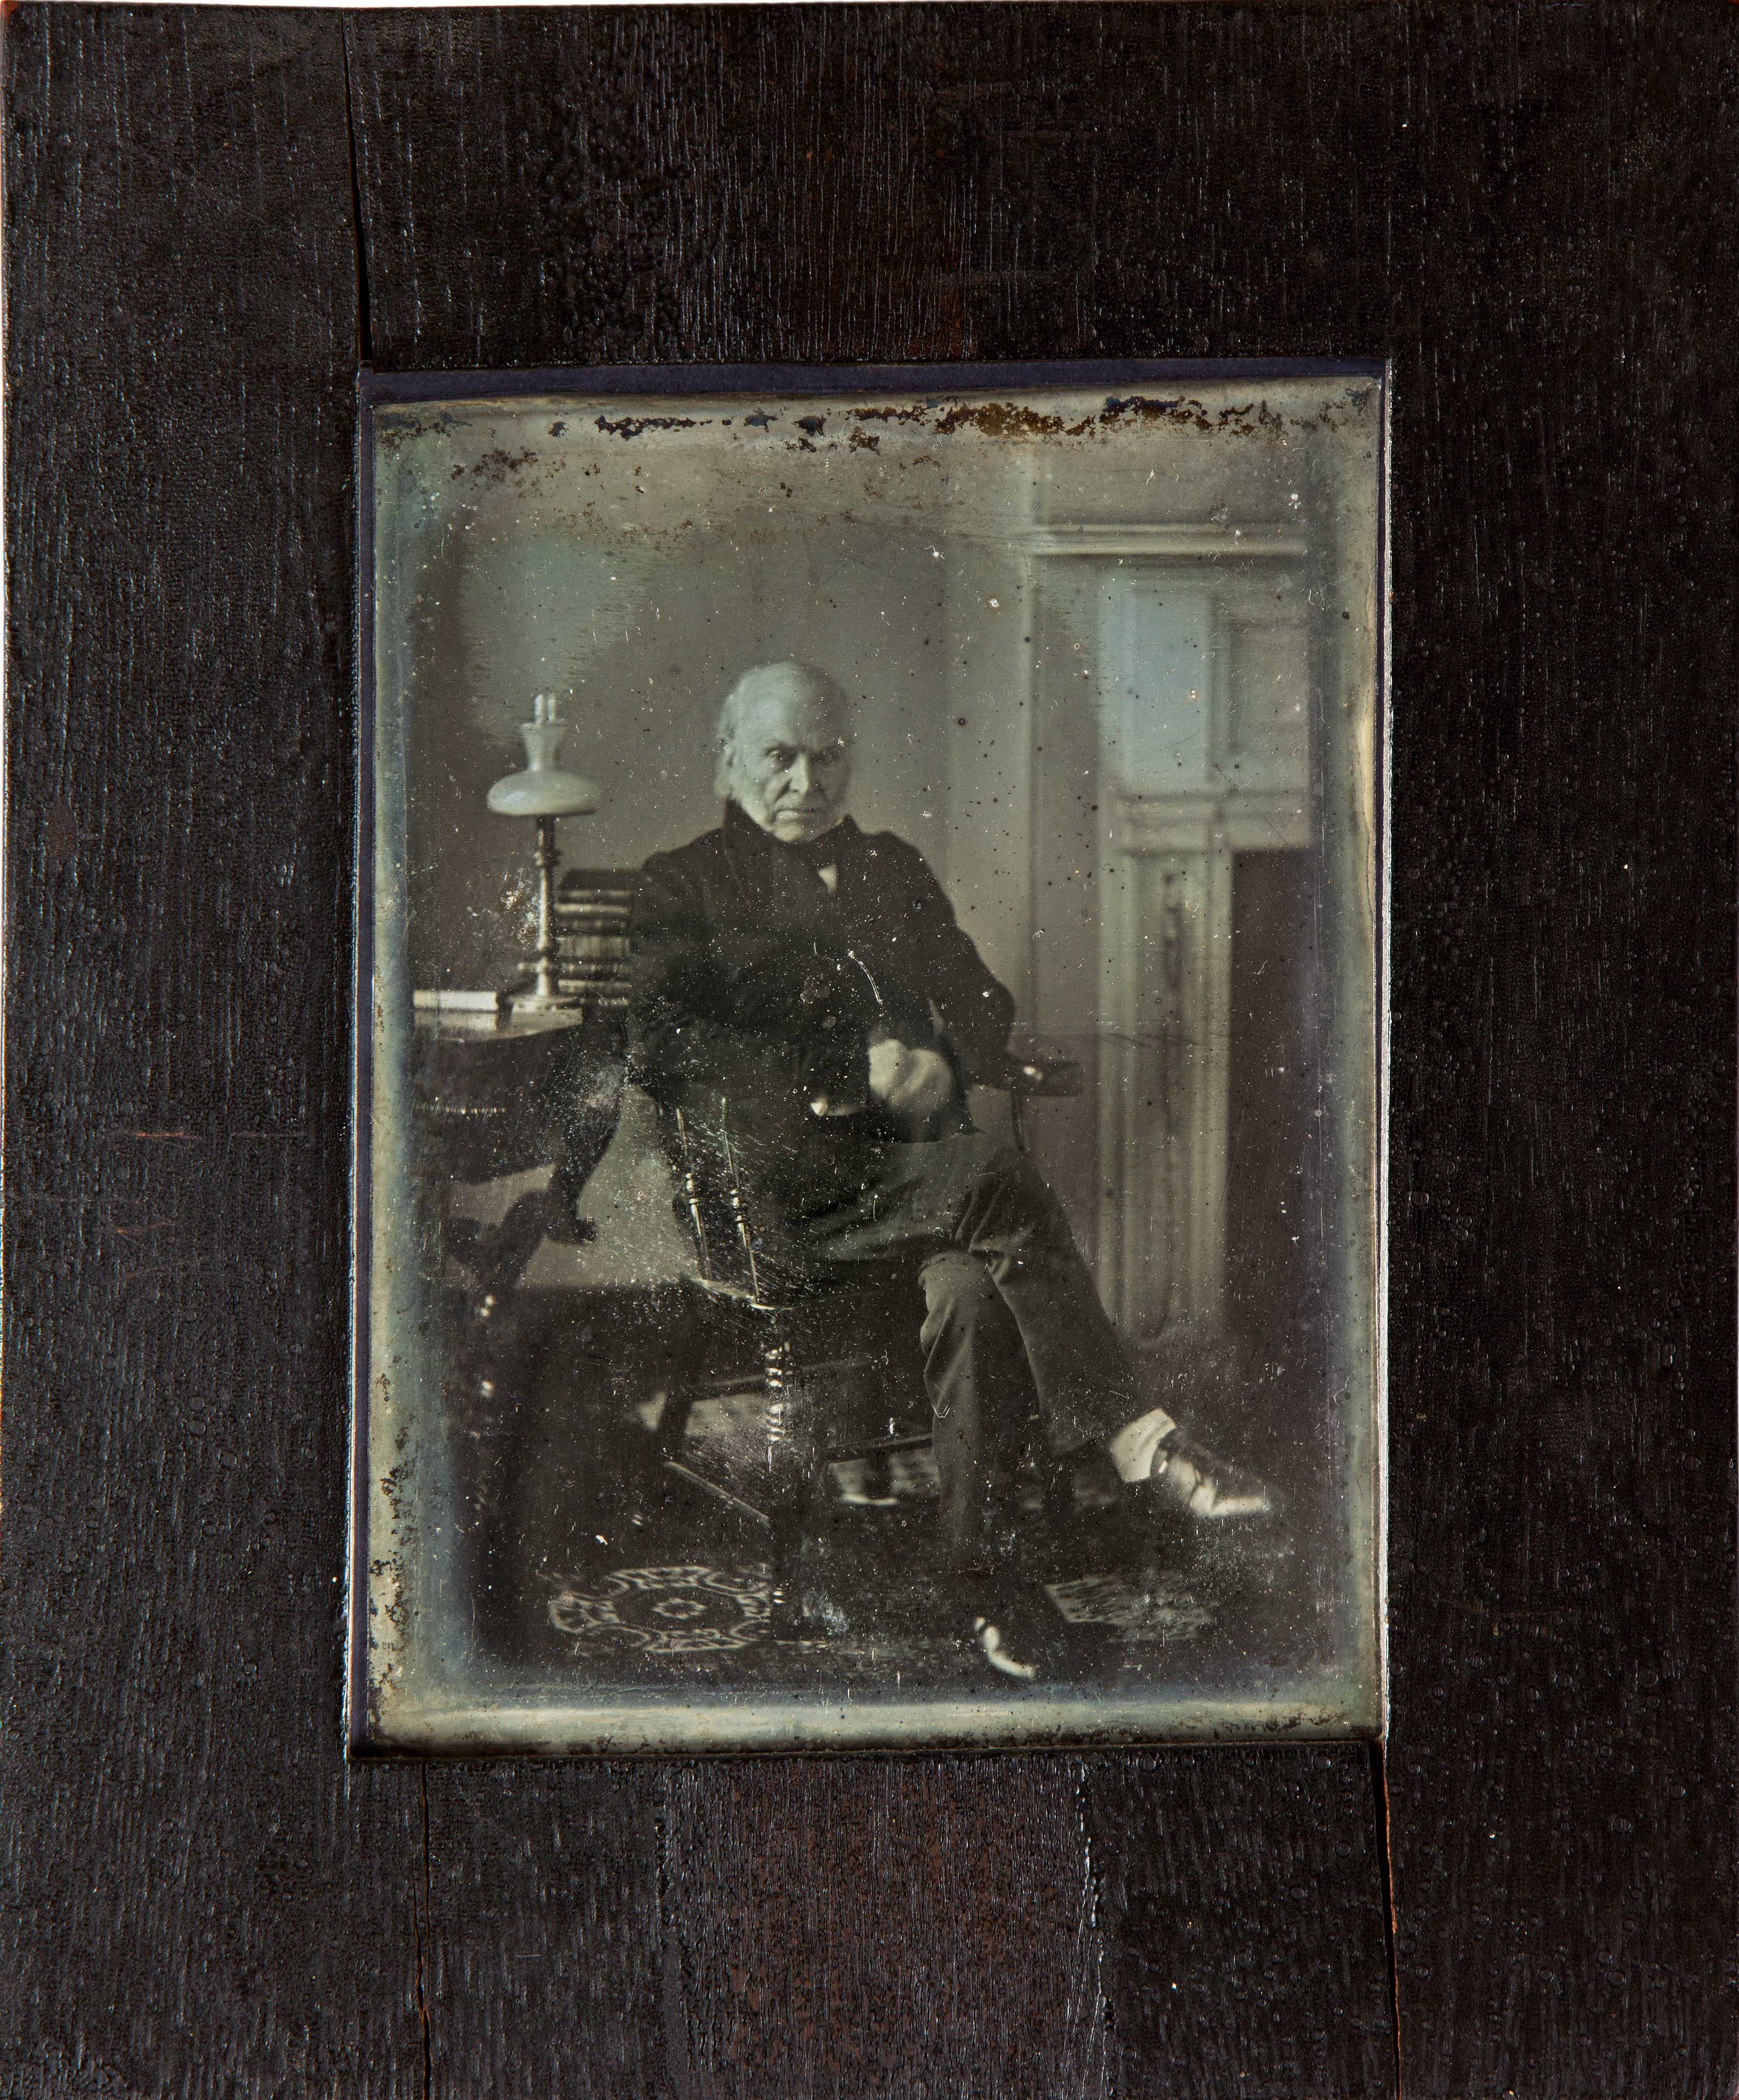 Very old photograph of an old man looking at the camera